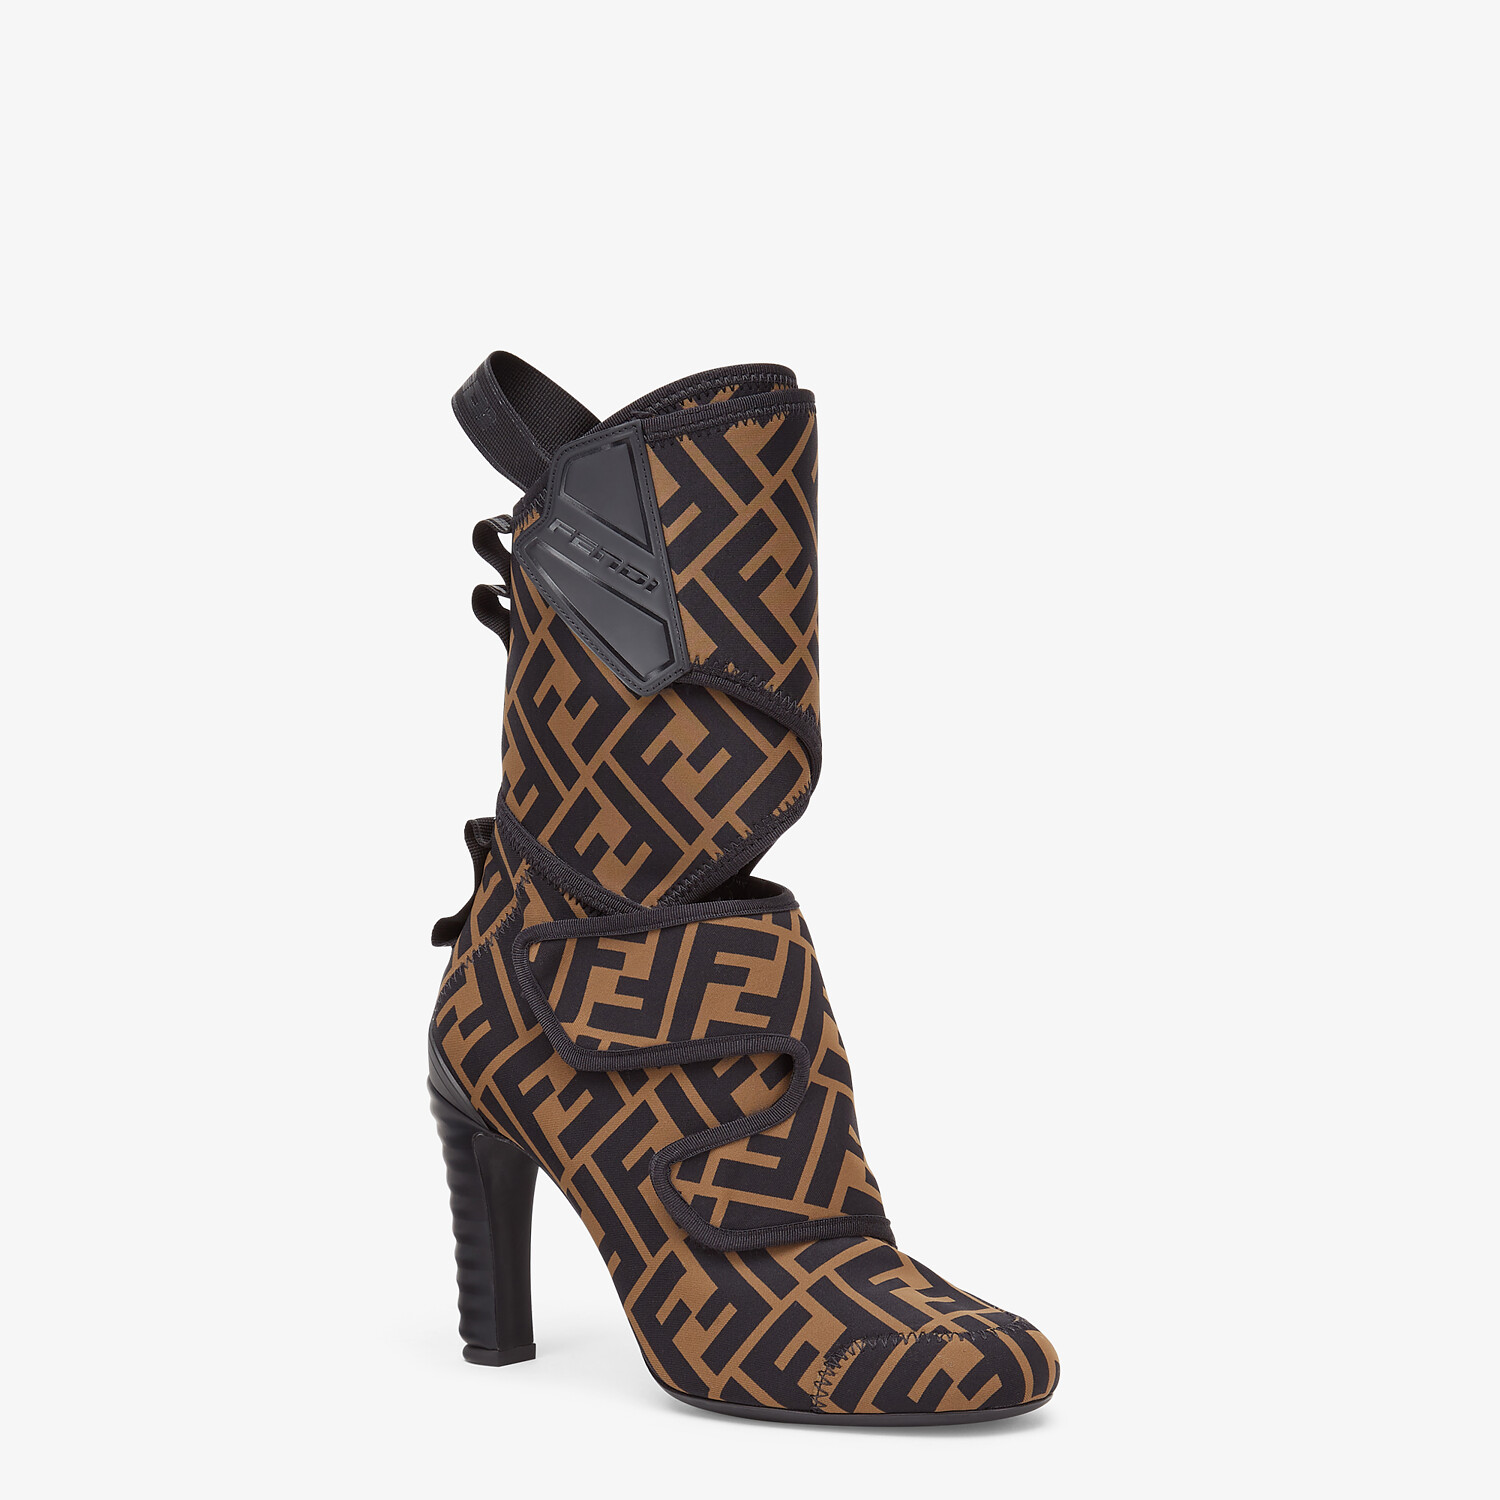 FENDI ANKLE BOOTS - Promenade Booties in brown fabric - view 2 detail